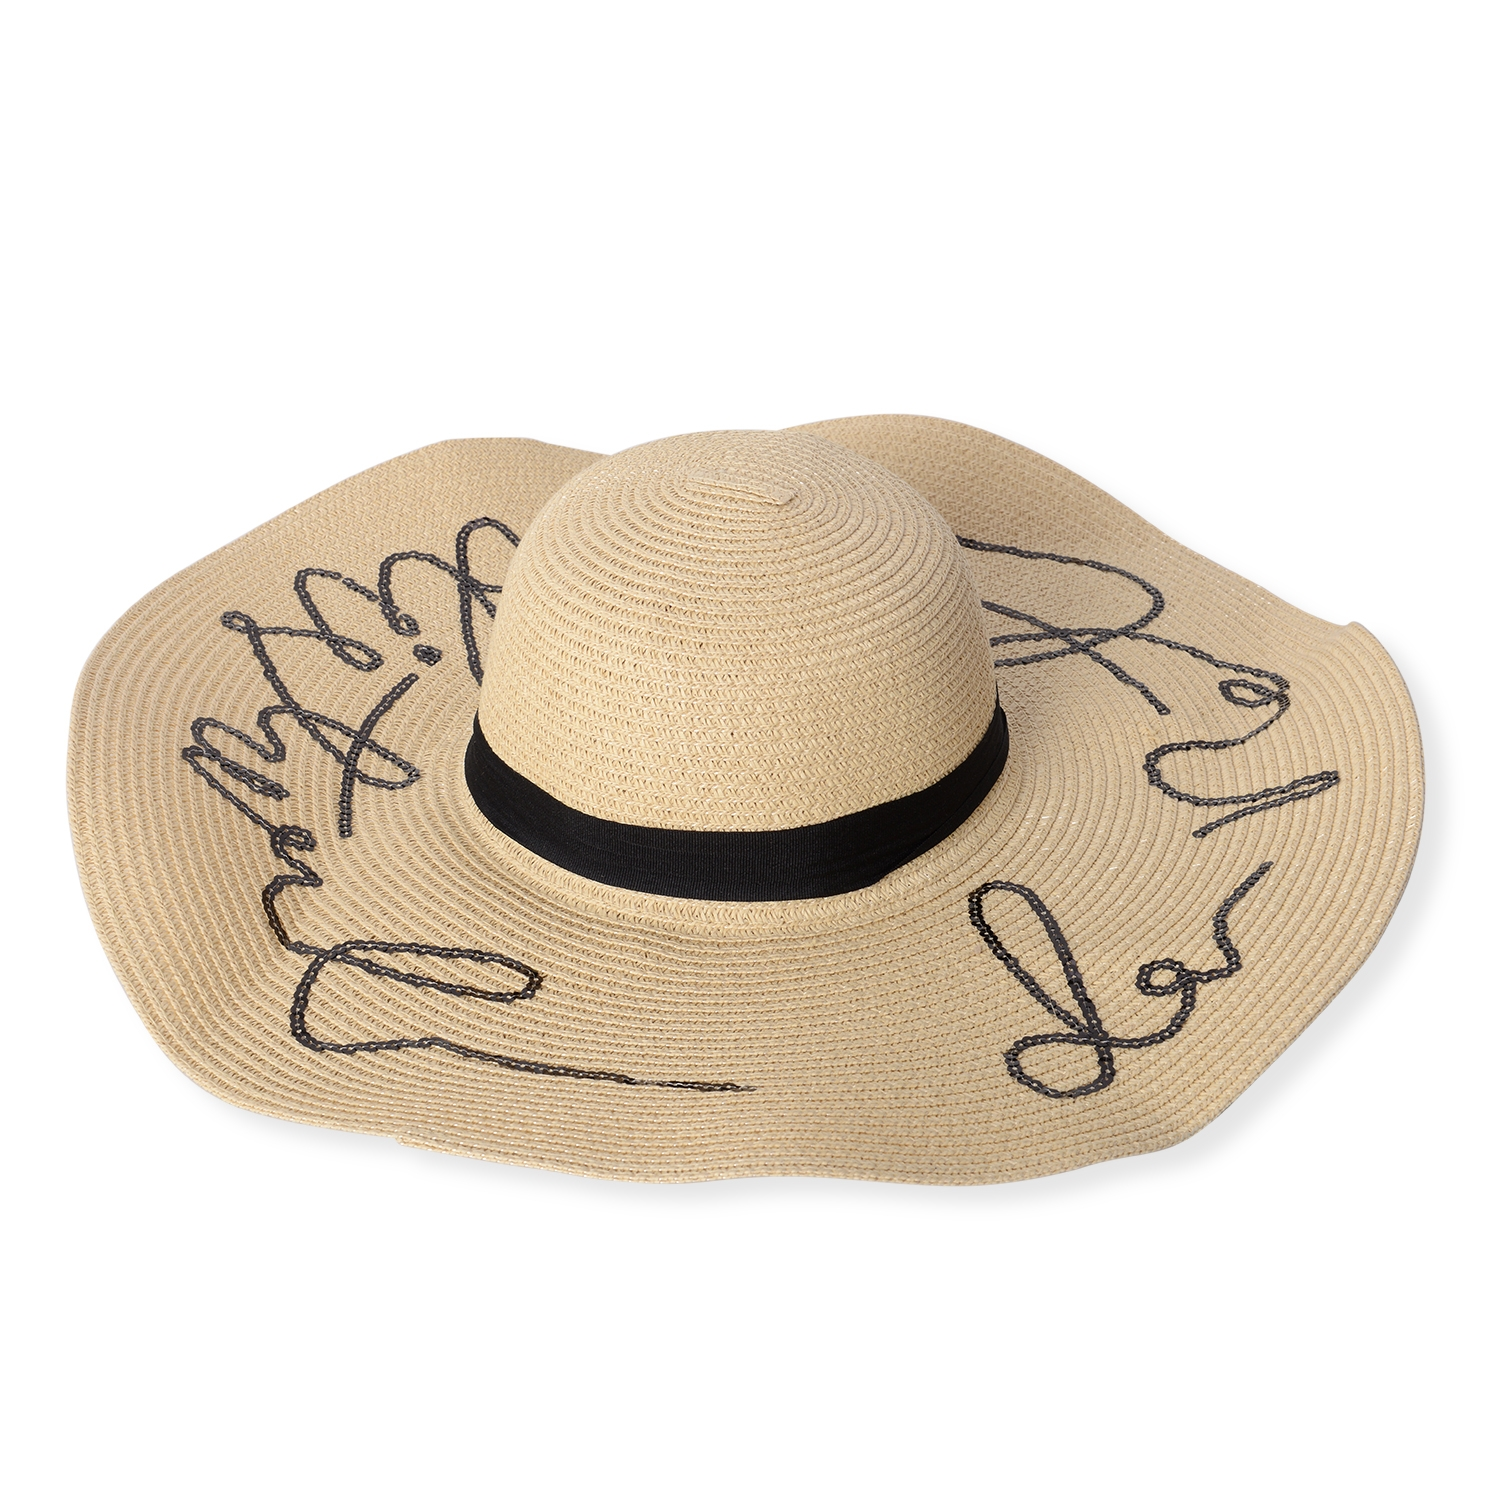 34988e3d10d17 Off White 100% Straw Paper Embroidered Out of Office Sun Hat